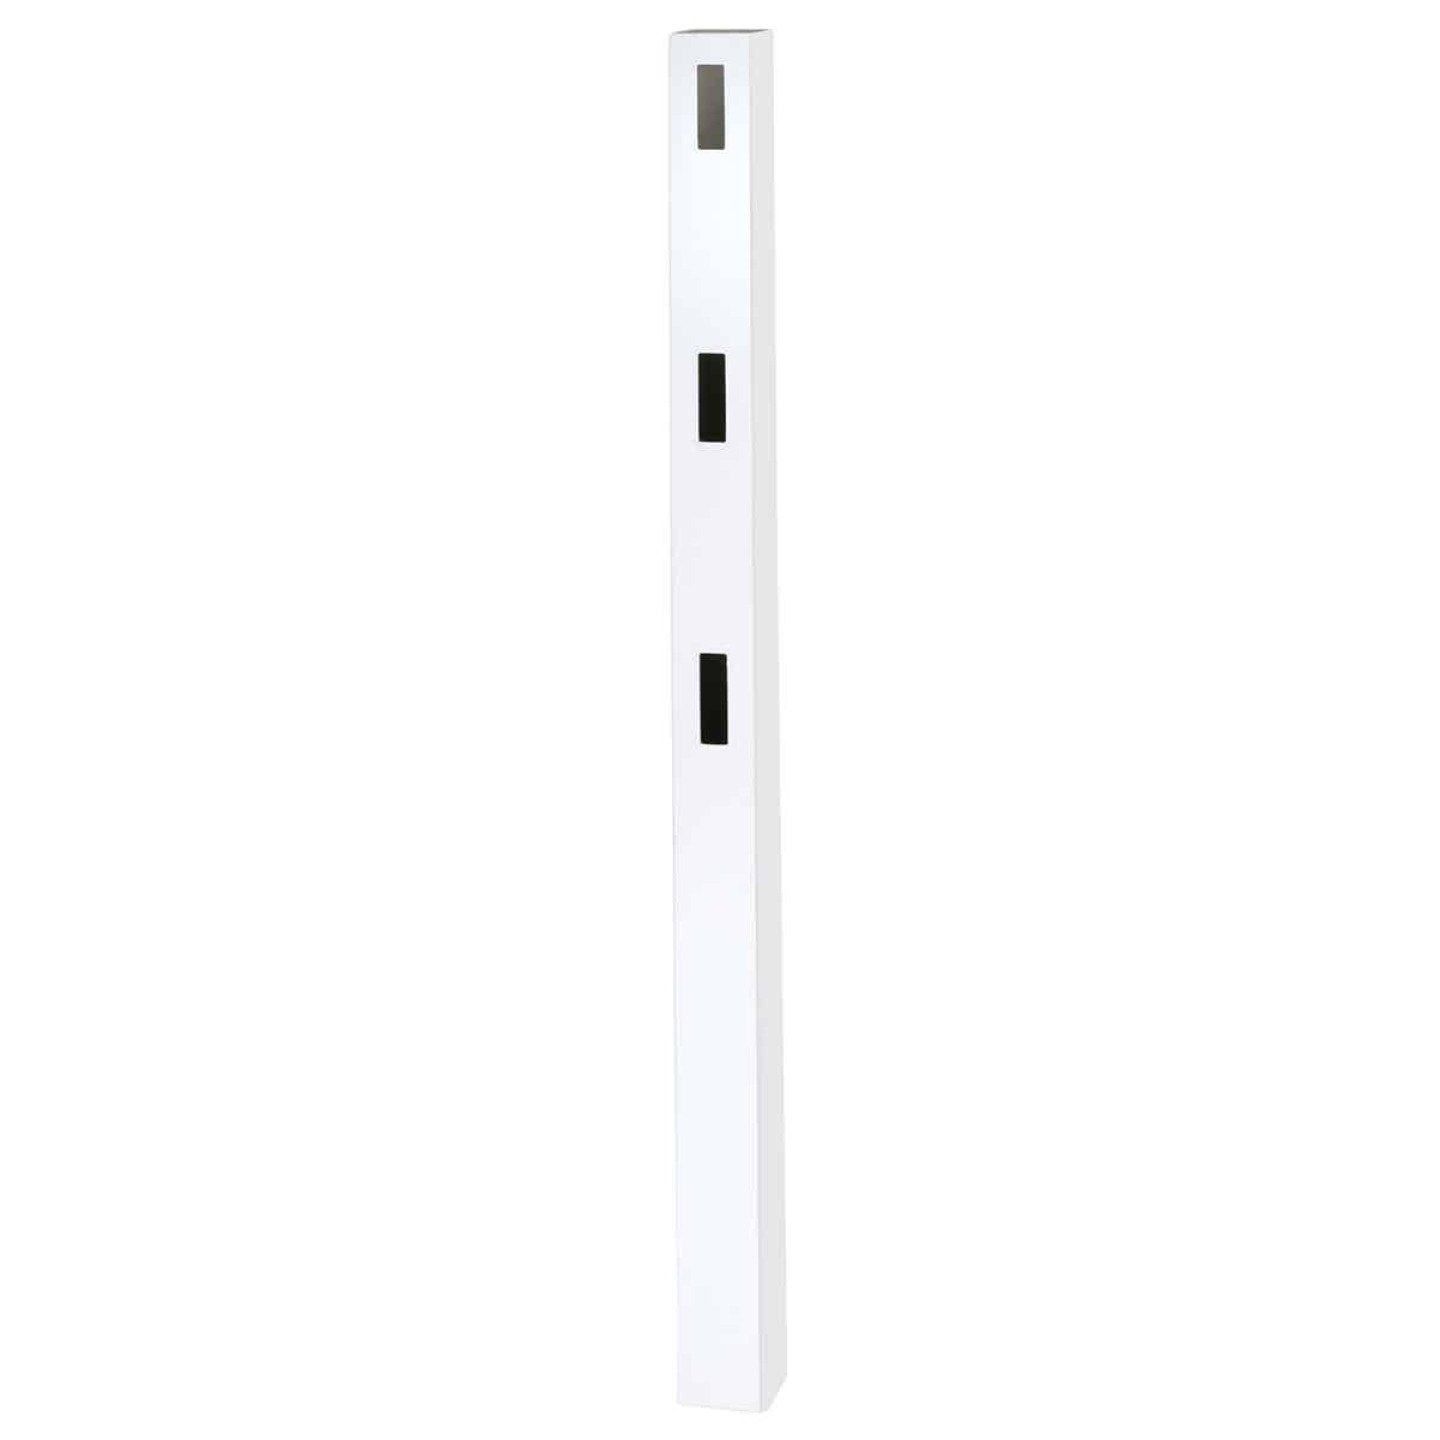 Outdoor Essentials 5 In. x 5 In. x 84 In. White Line 3-Rail Fence Vinyl Post Image 3